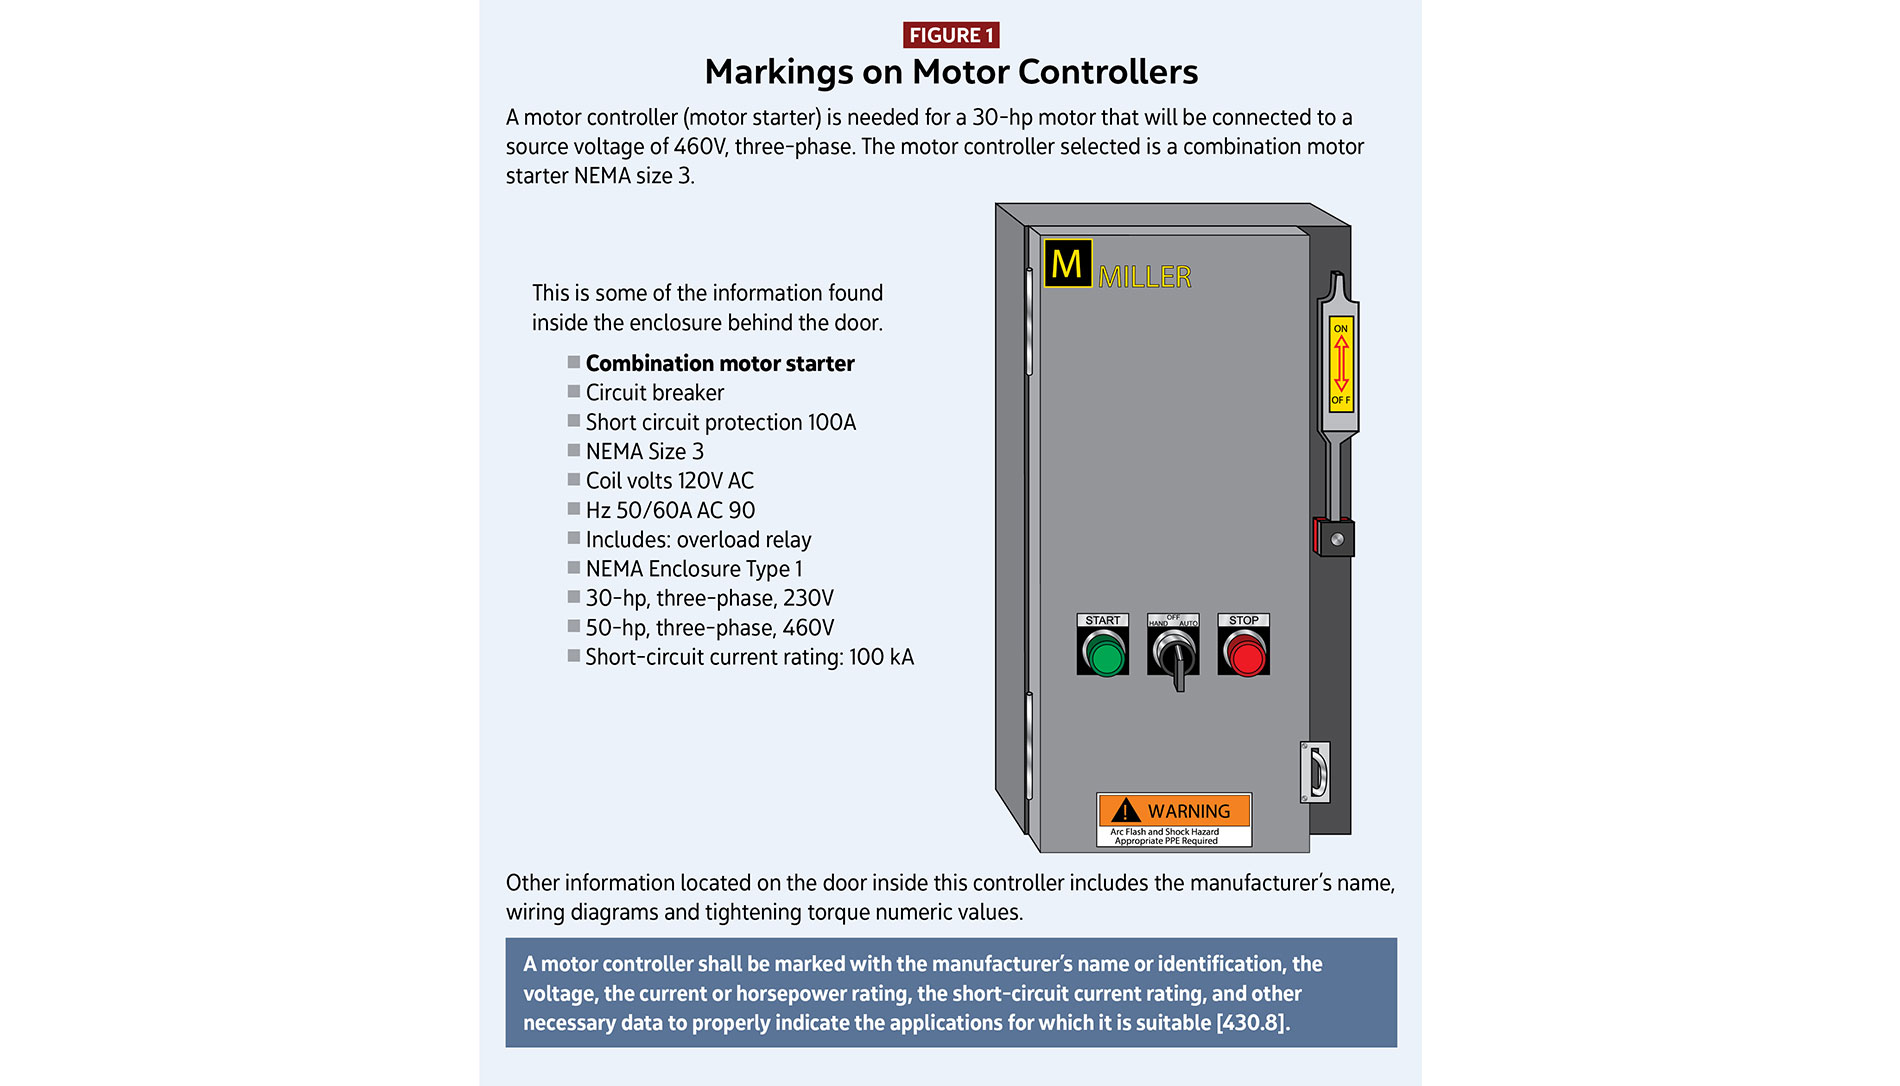 hight resolution of motors motor circuits and controllers part v article 430 electrical contractor magazine